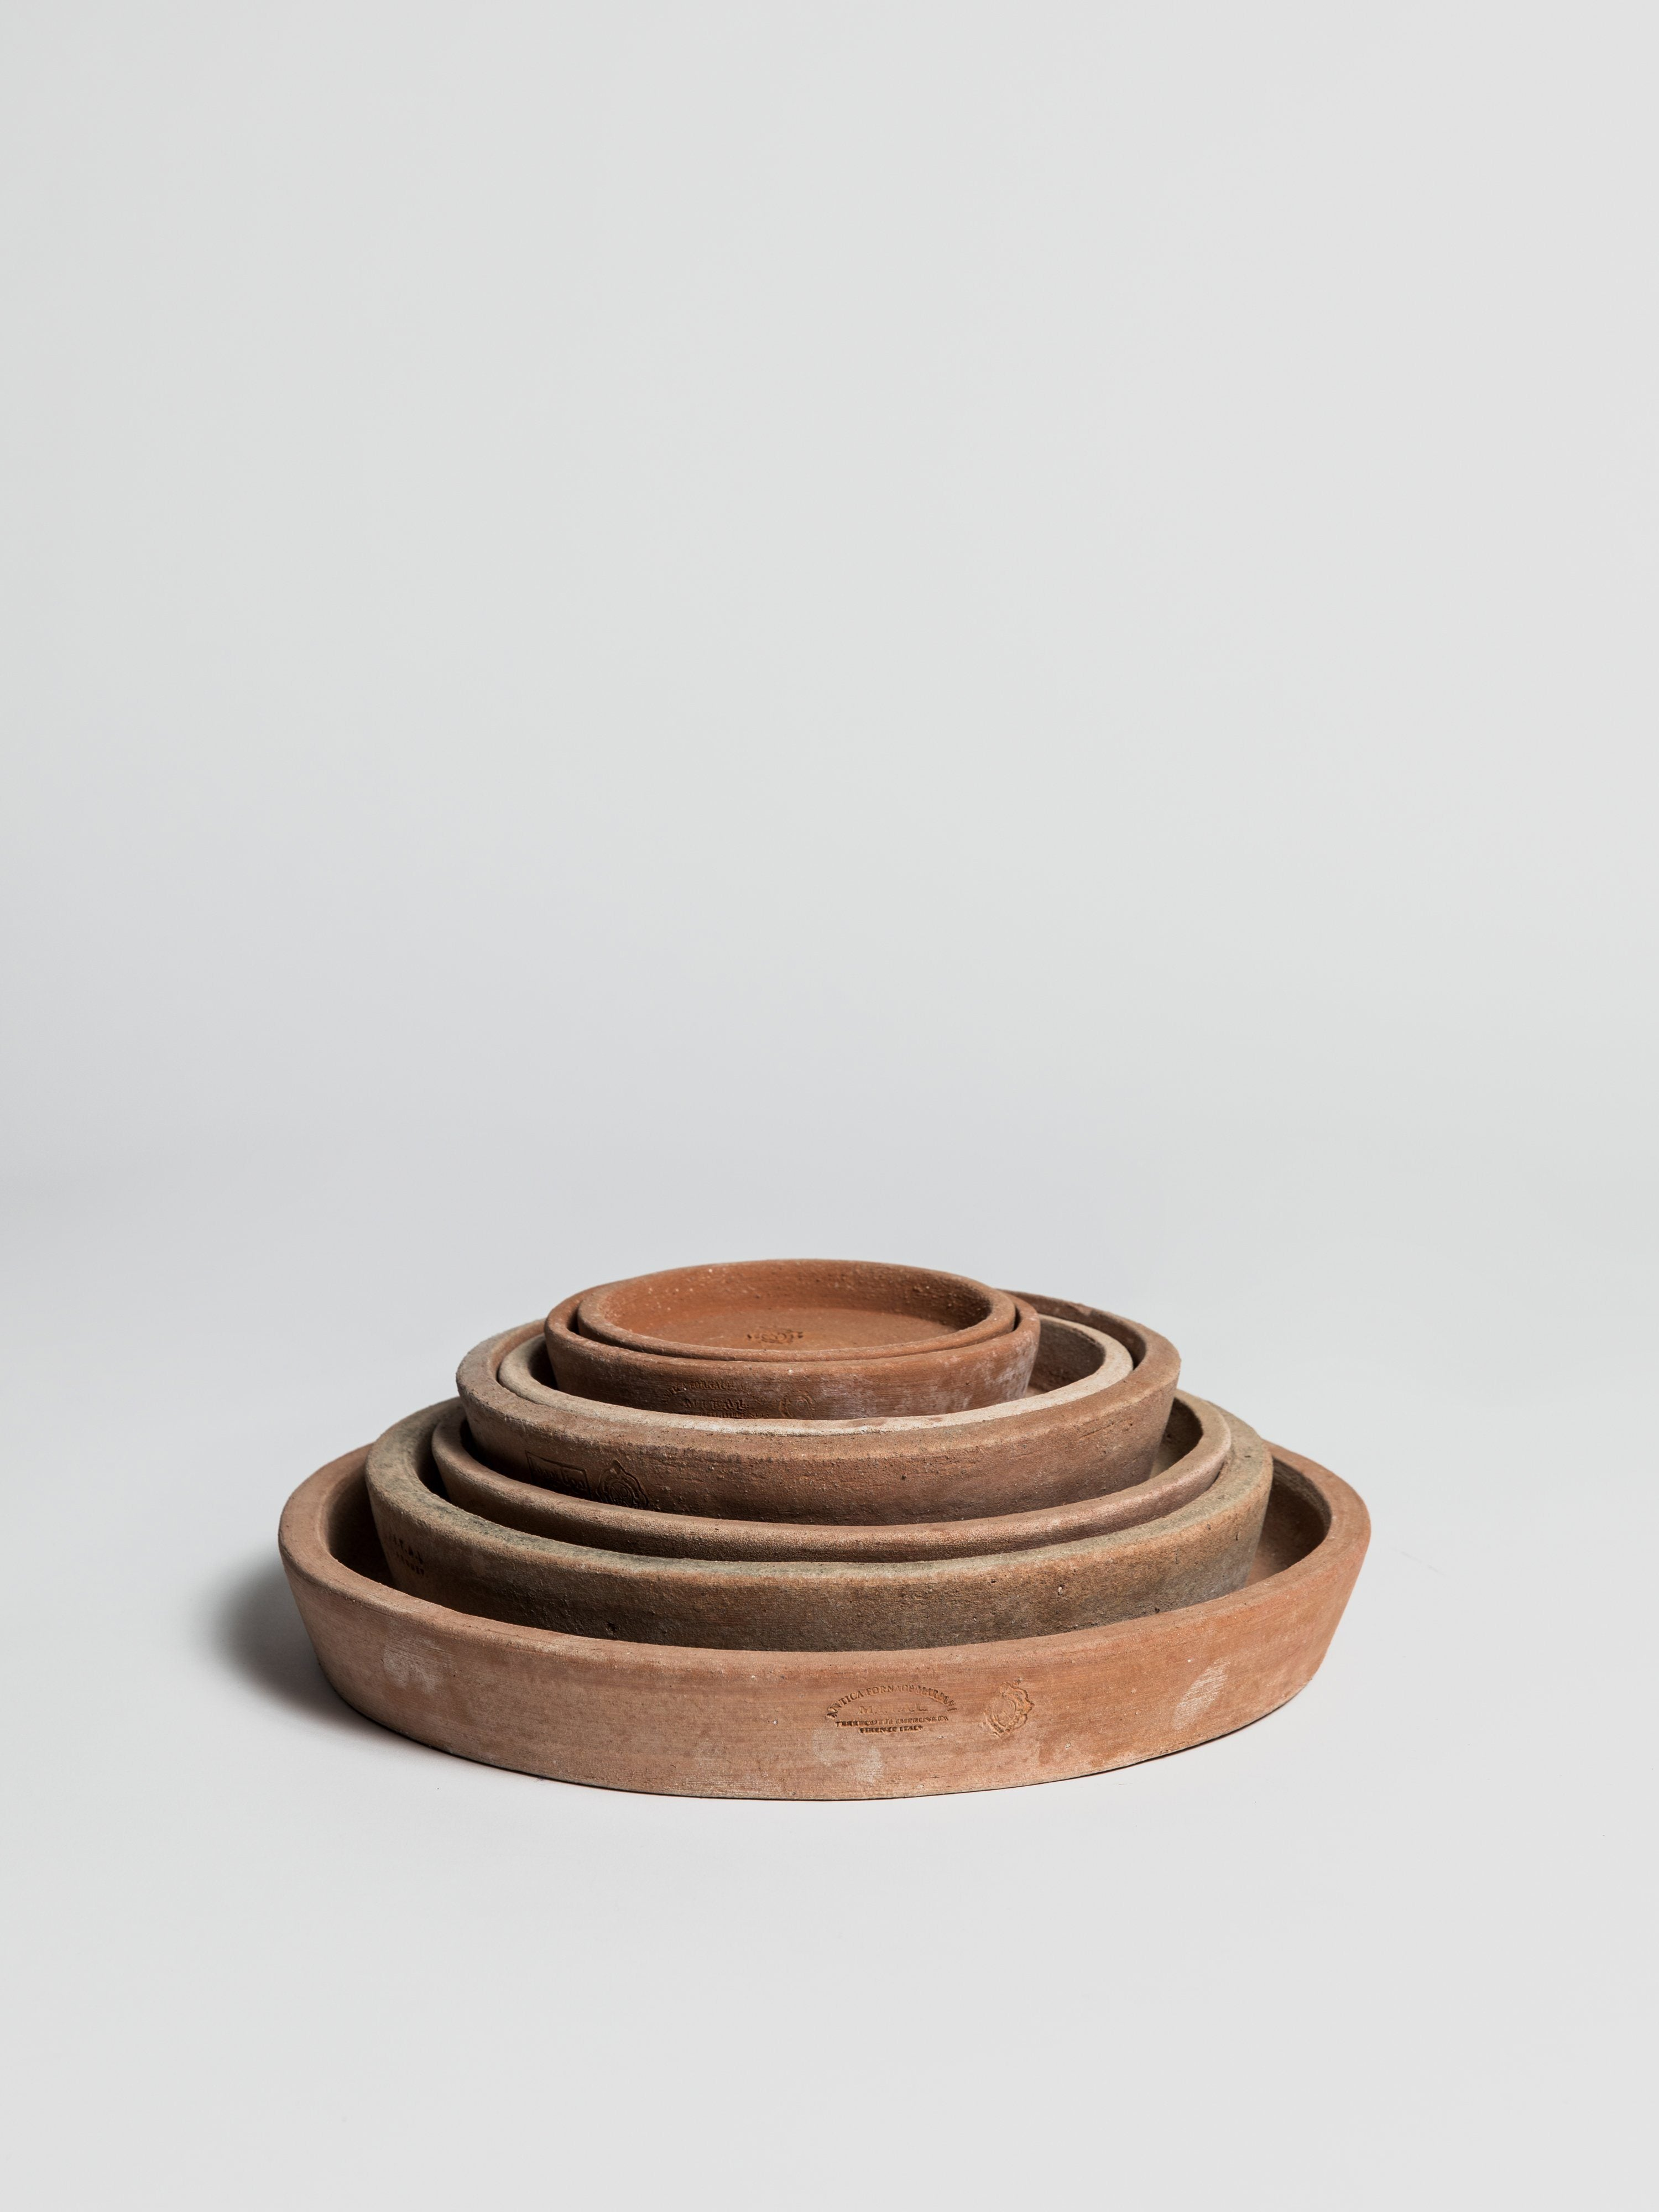 Mital Saucer Terracotta (without rim) Saucer M.I.T.A.L